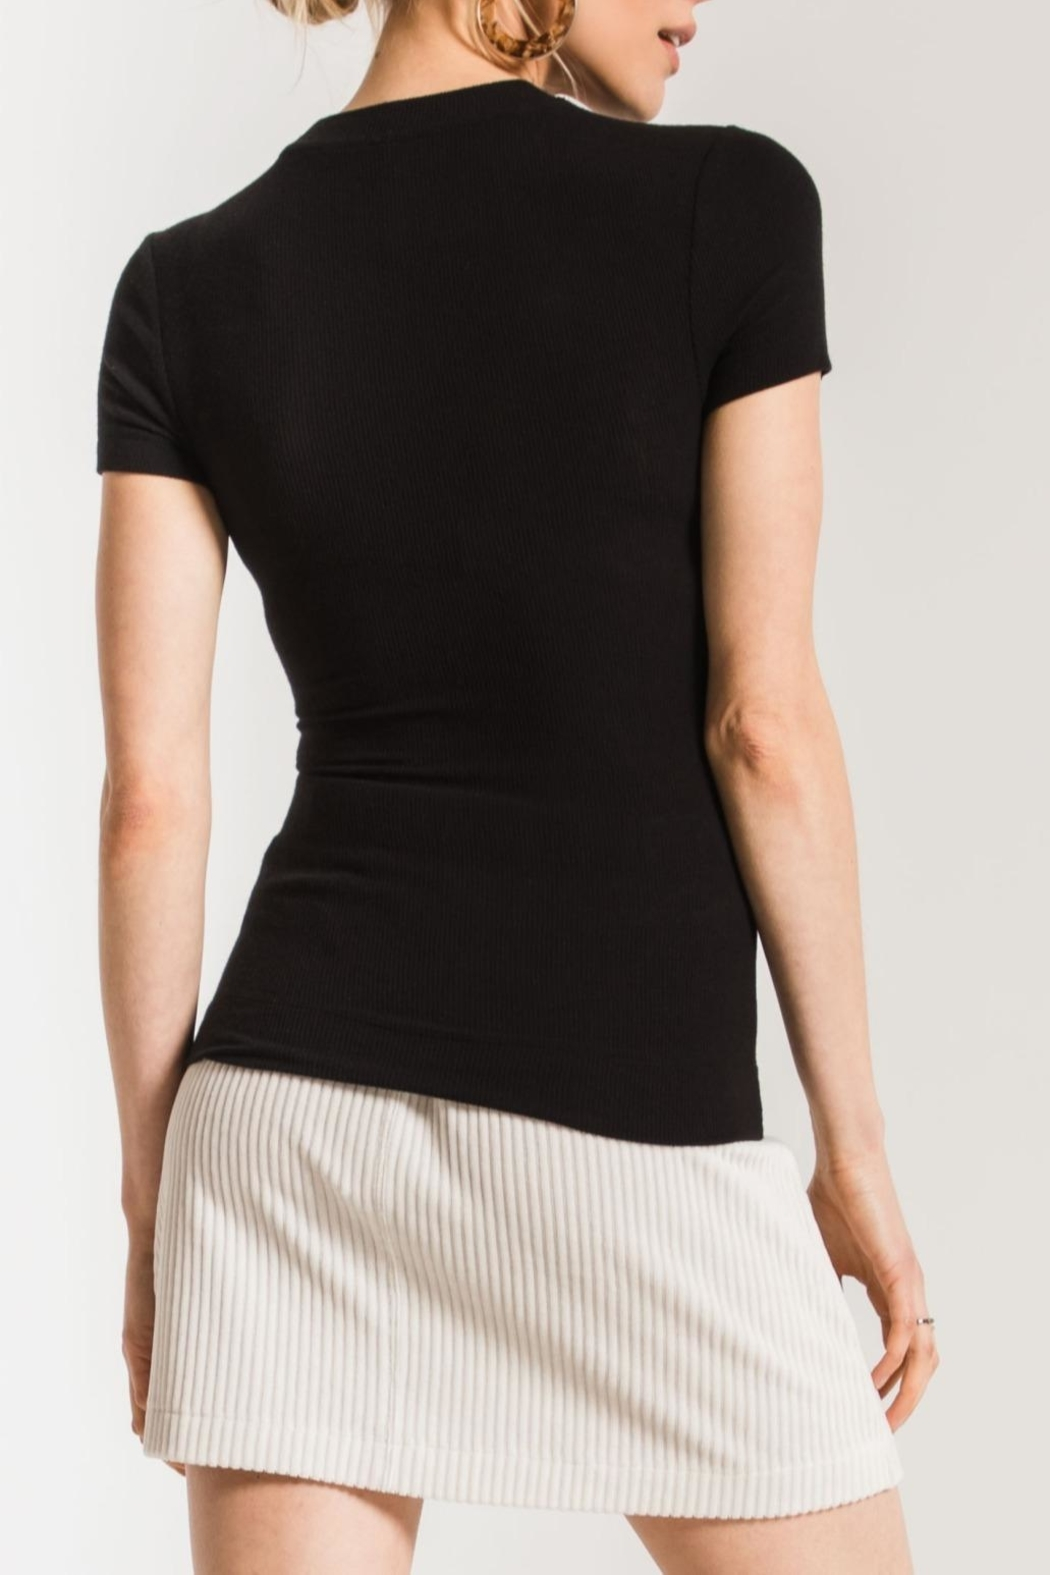 z supply Micro Rib Tee - Side Cropped Image